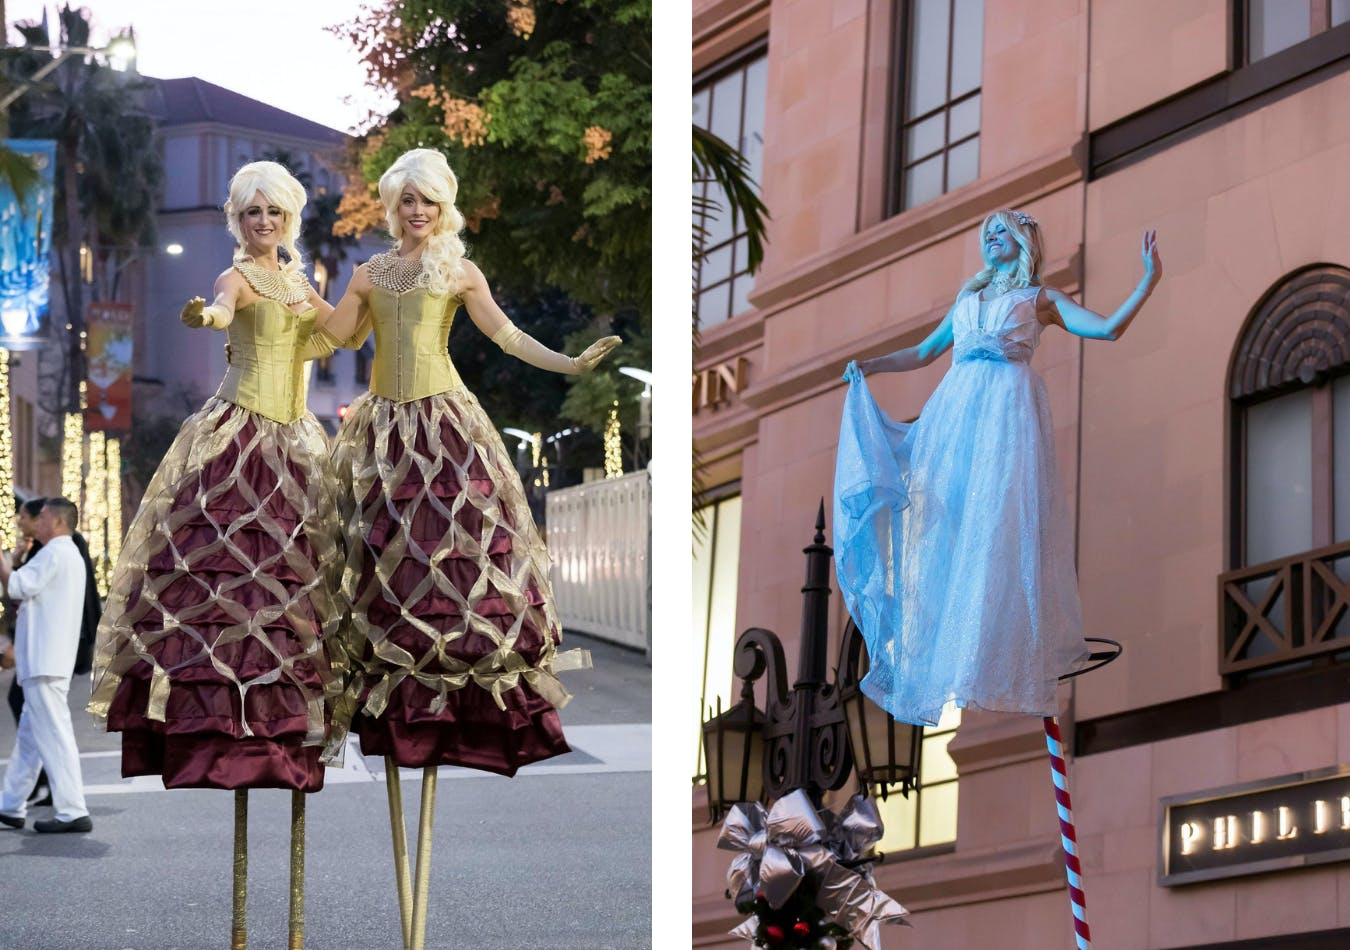 Stilt walkers greet guests on rodeo drive for corporate holiday event | PartySlate